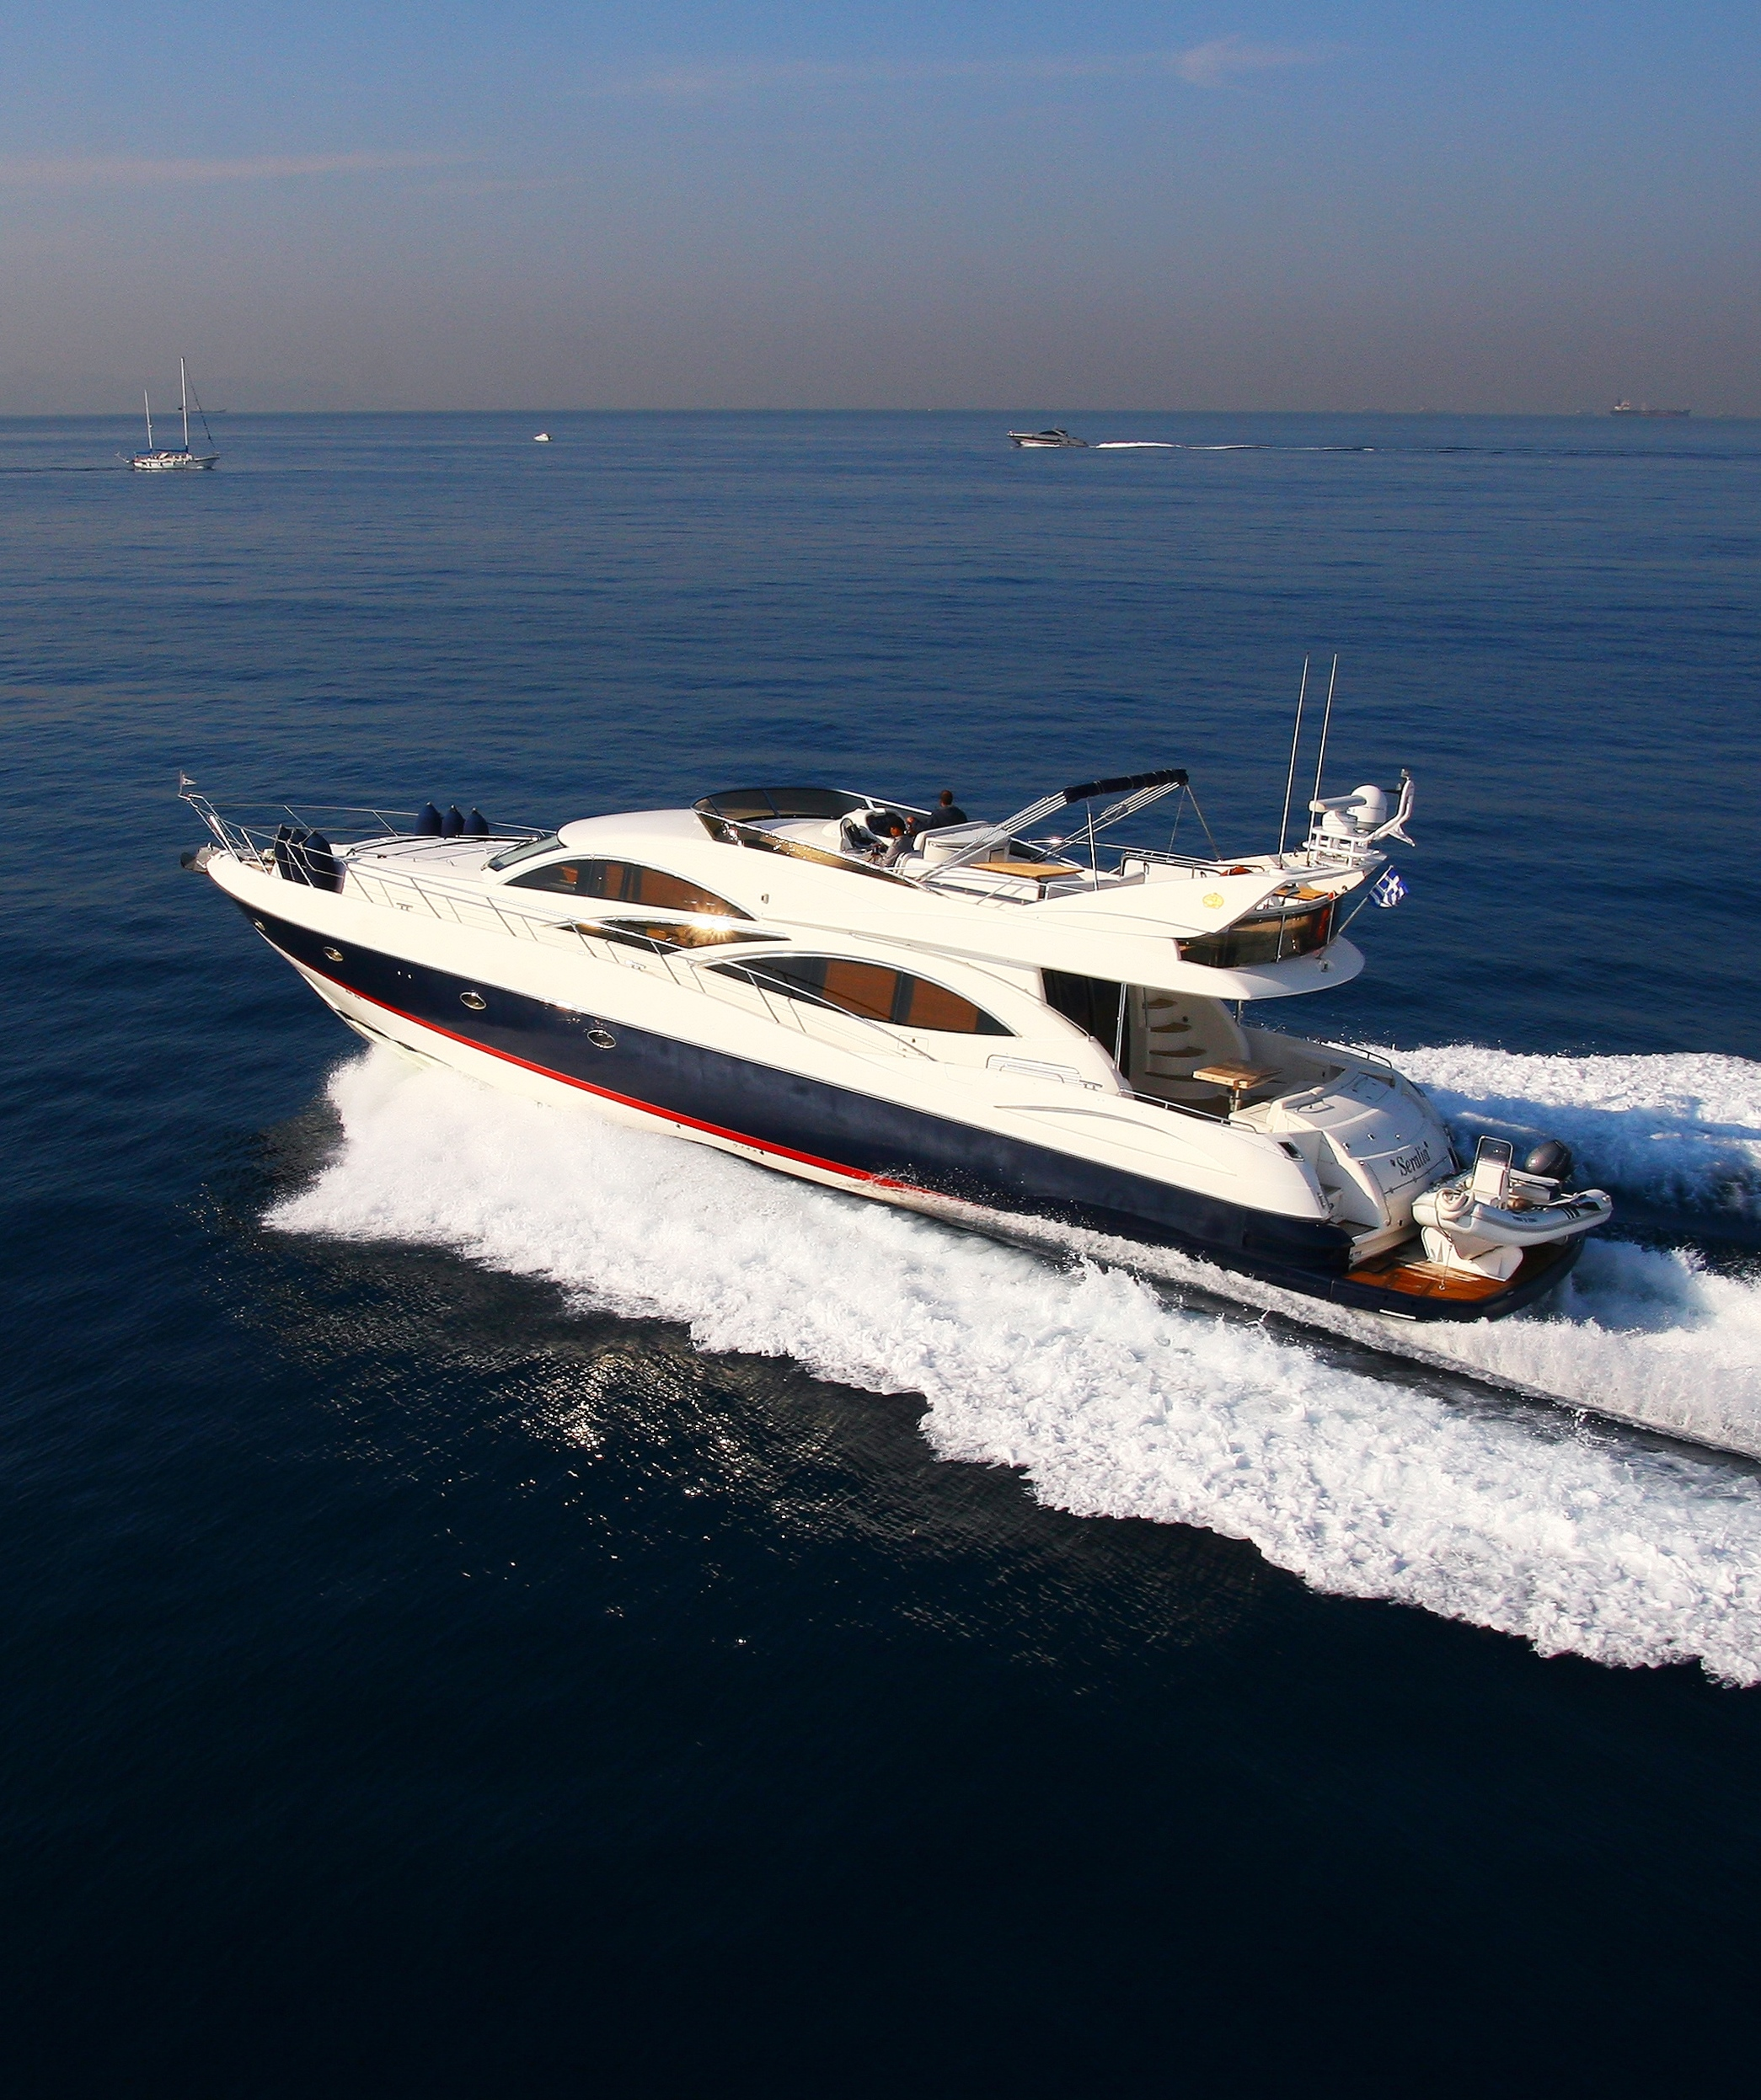 Seralia - Motor Yacht for Charter in Greece